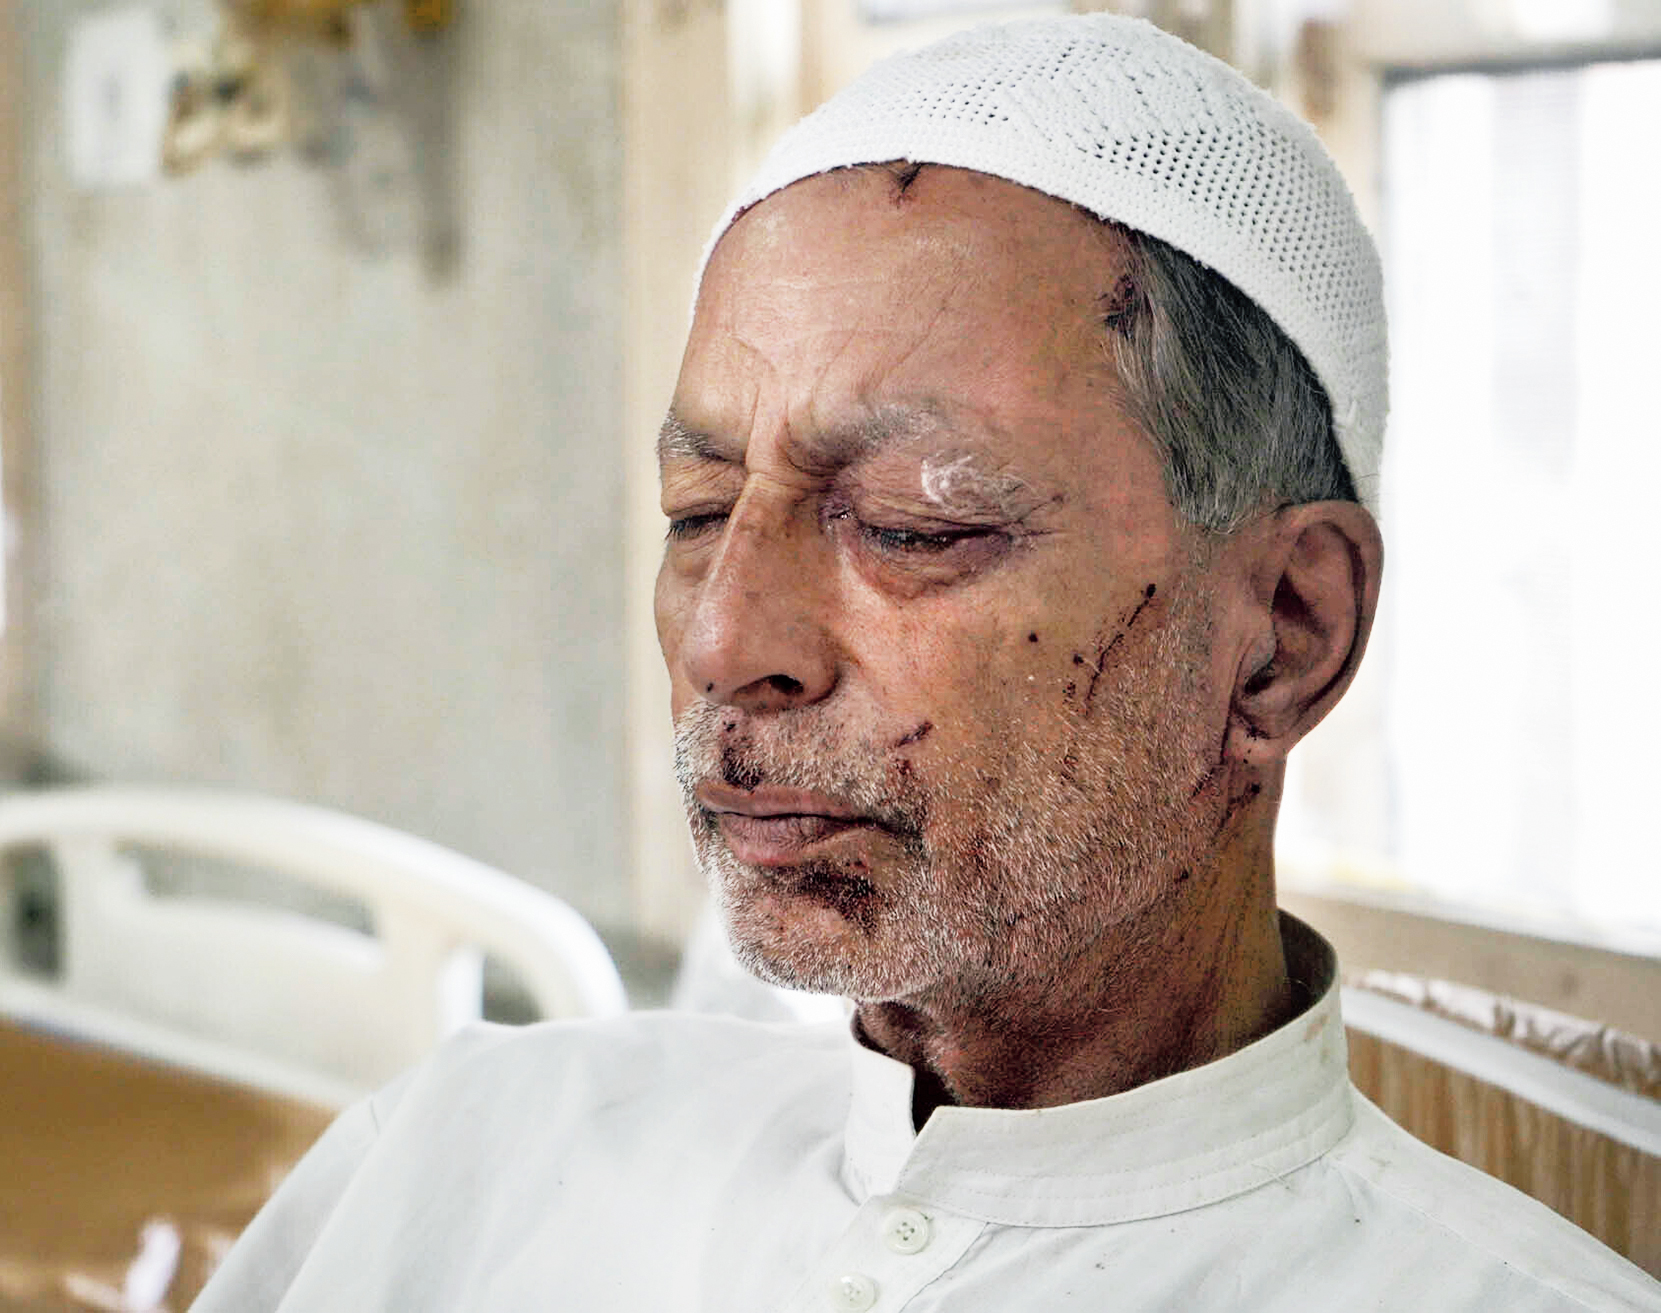 Admitted to a hospital in Srinagar, Mohammed Siddiqu, 70, said on Sunday that his left eye was badly damaged when a security official fired a pellet gun at him while he was returning home from a mosque. Siddiqu lifted his shirt and showed his pellet-riddled back.